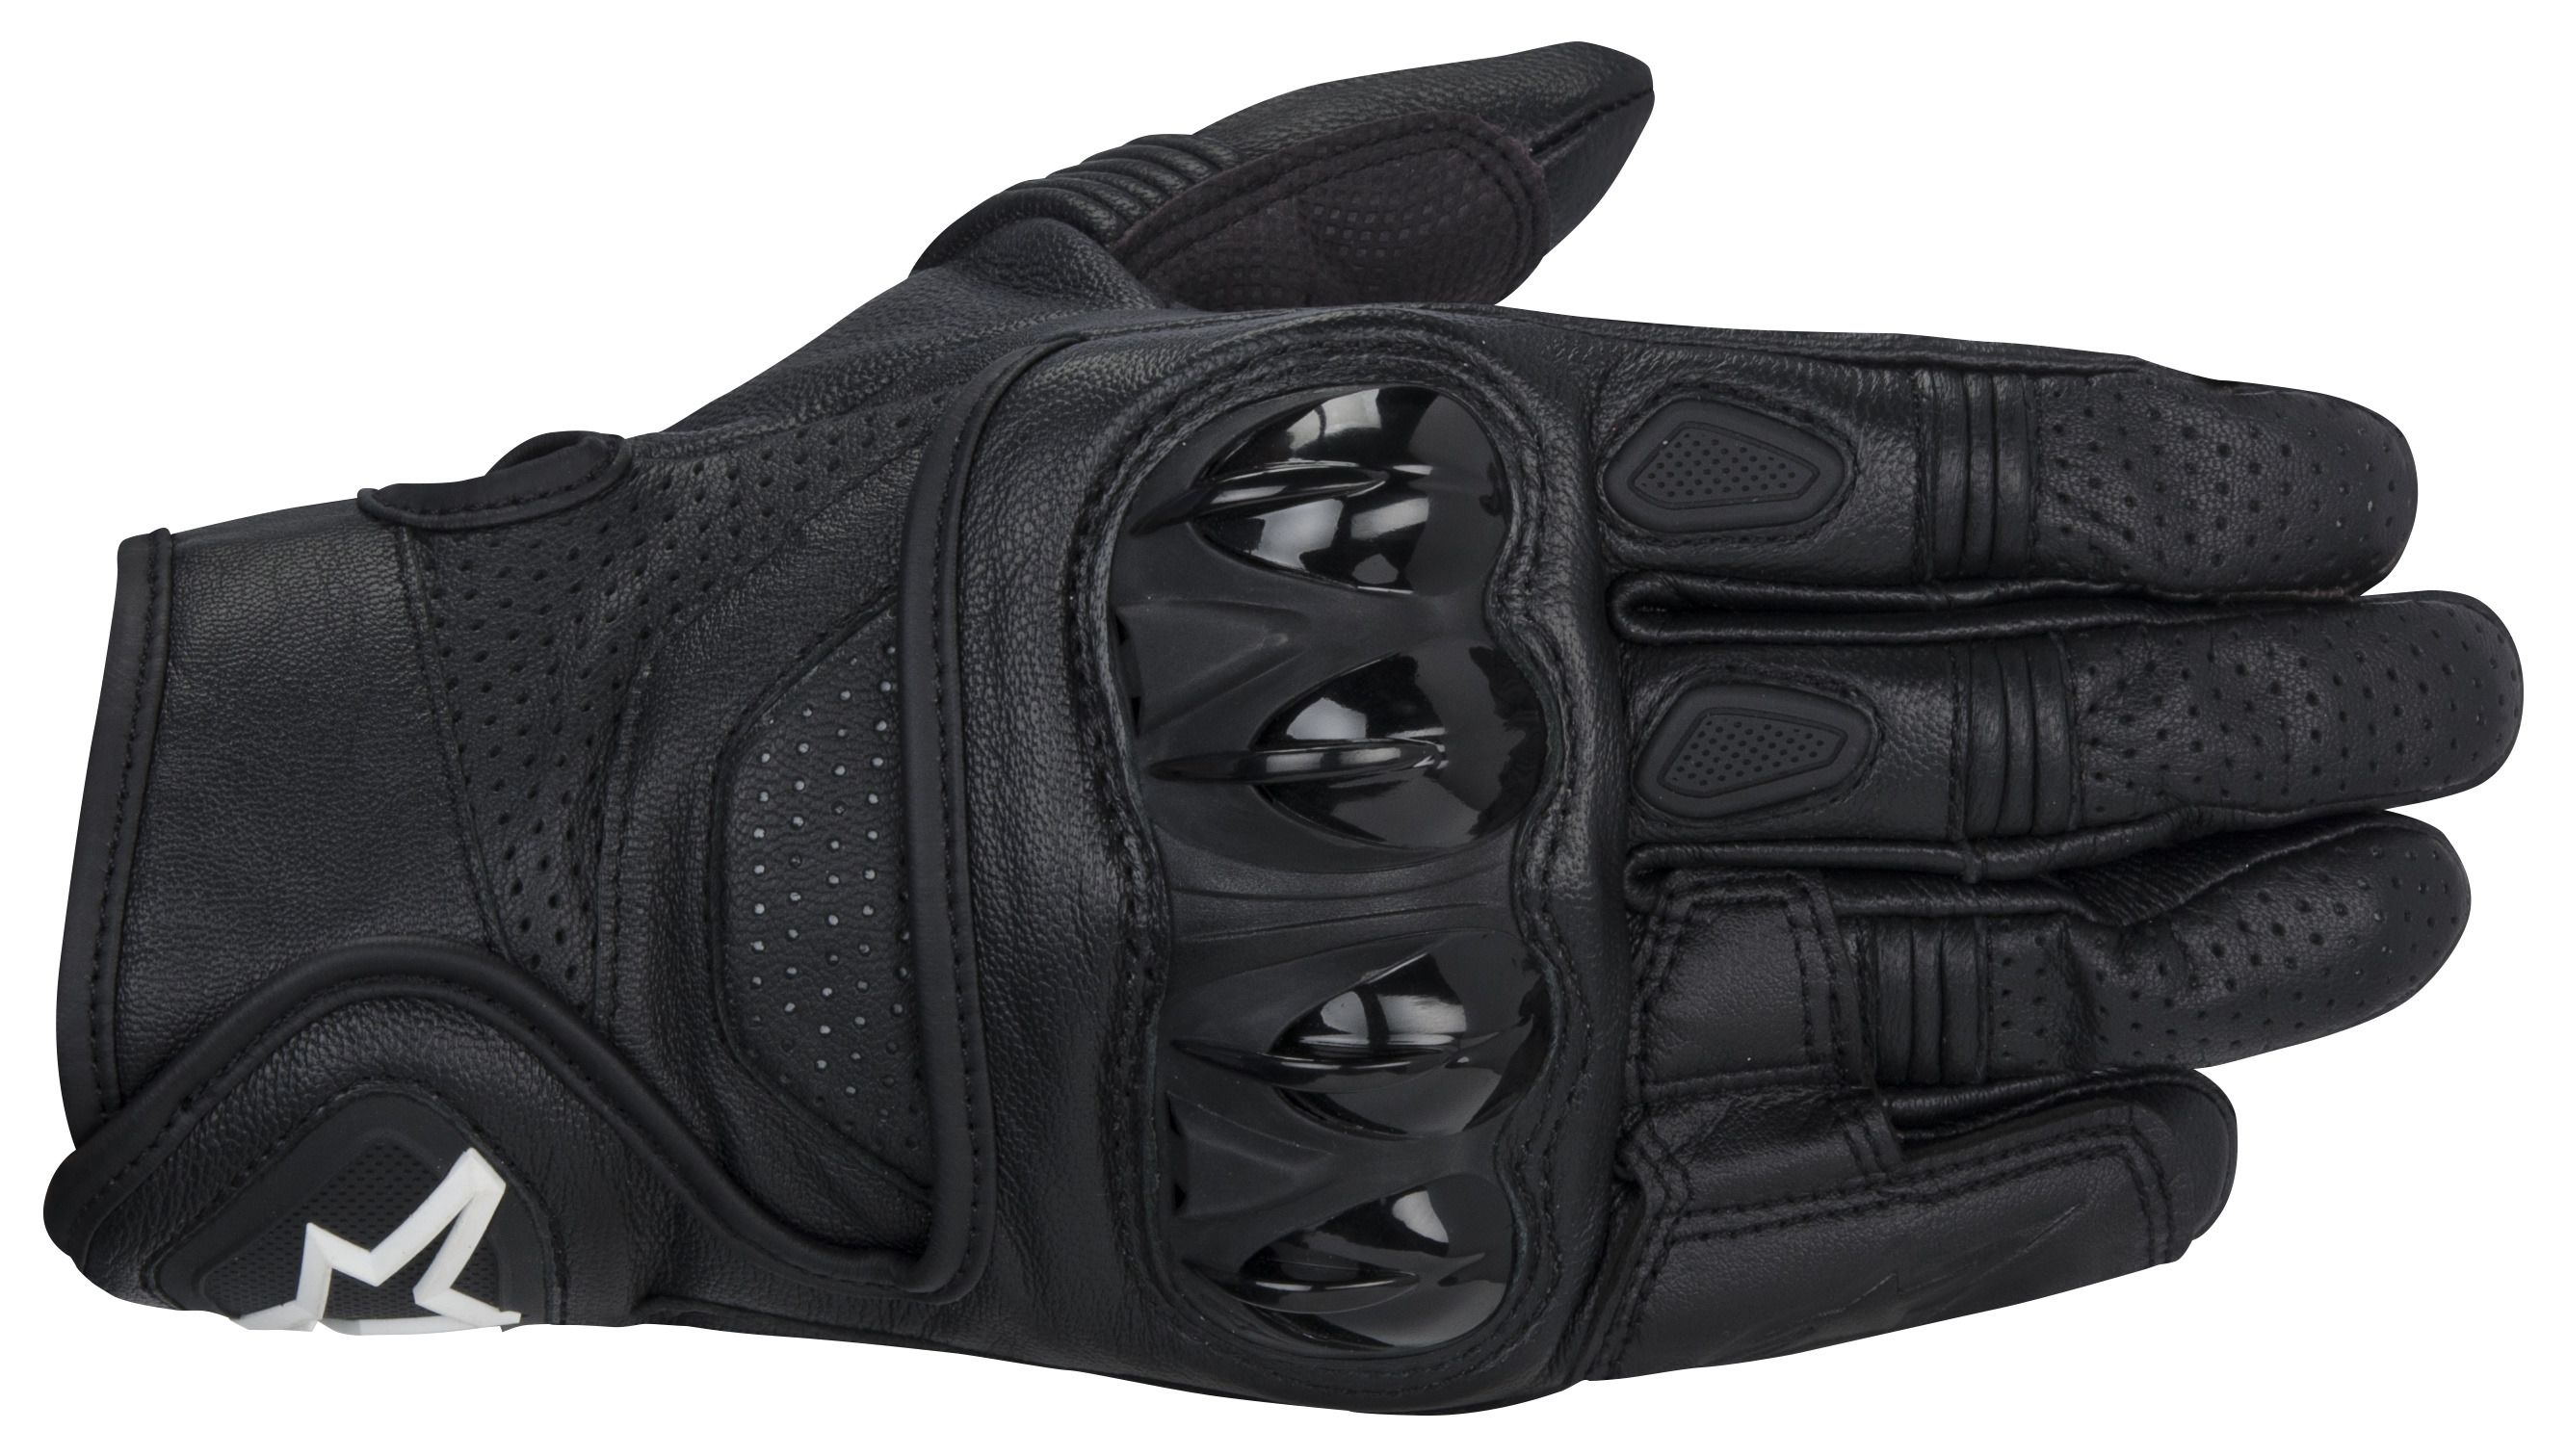 Xxl black leather gloves - Xxl Black Leather Gloves